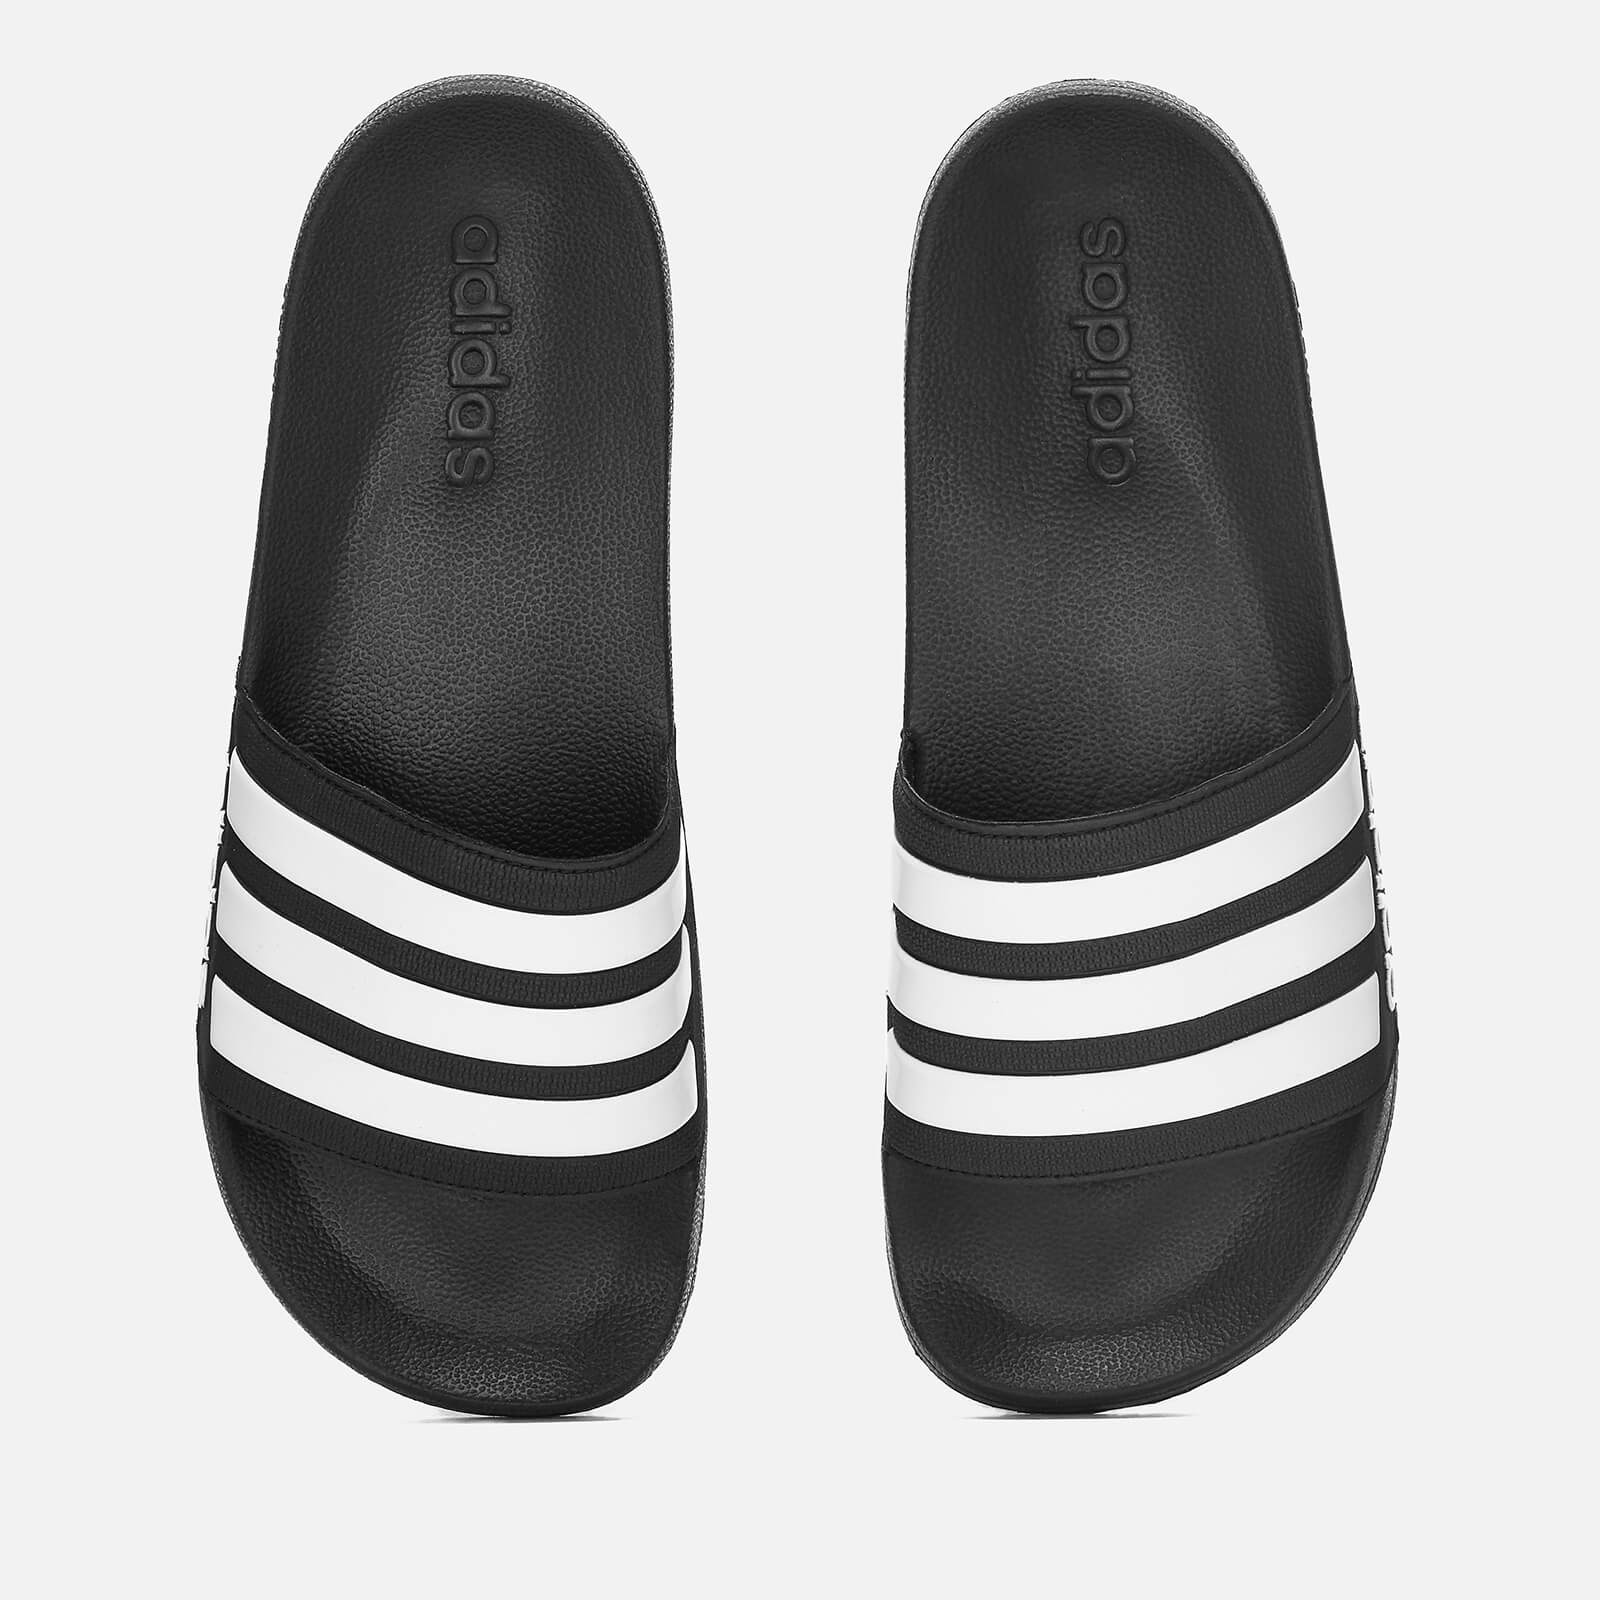 5deaa4672305 adidas Men s Adilette Shower Slide Sandals - Black